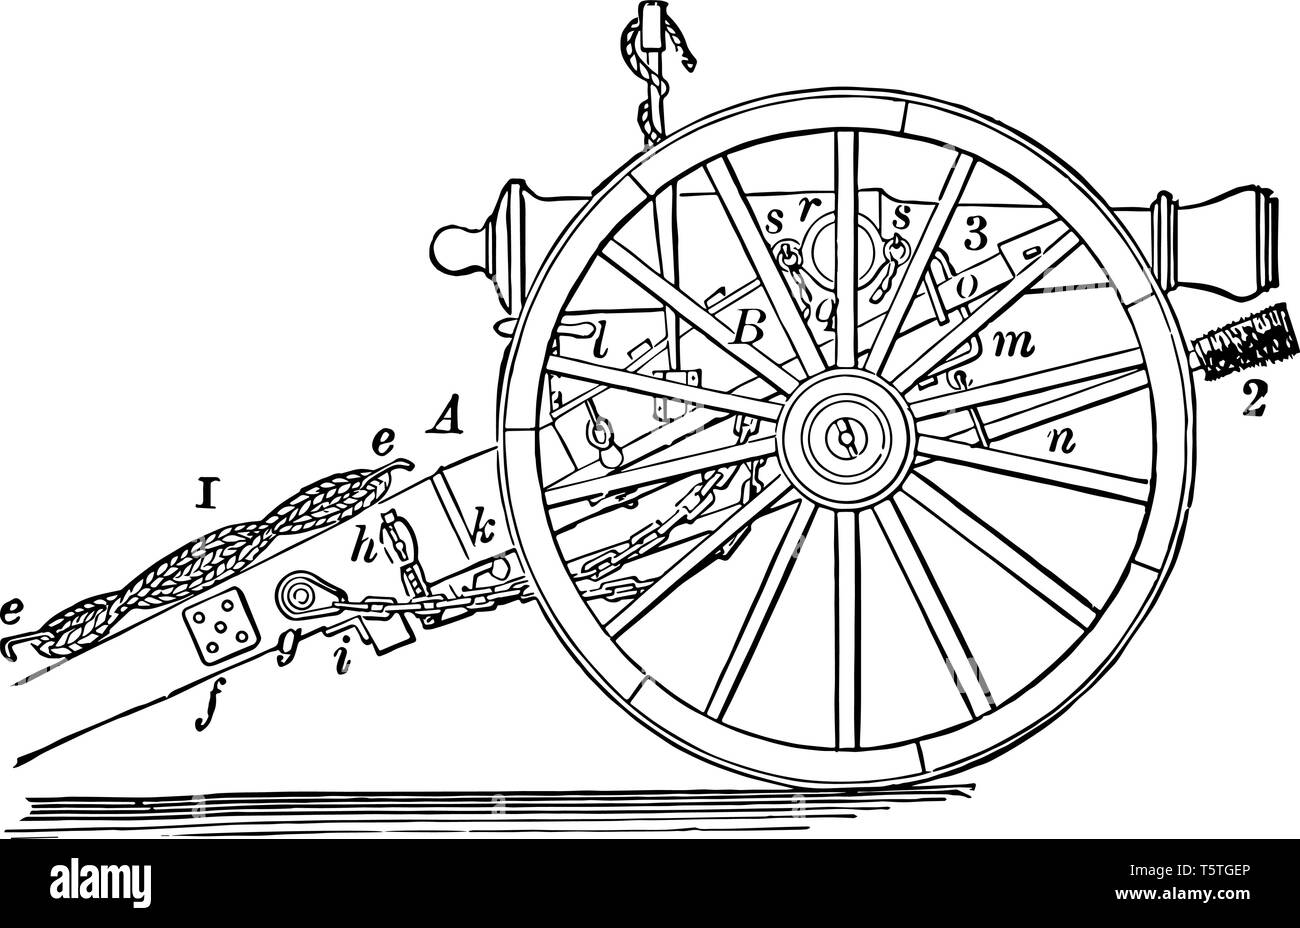 Field Gun Carriage transported inland by rail and then drawn on makeshift carriages by oxen, vintage line drawing or engraving illustration. - Stock Vector